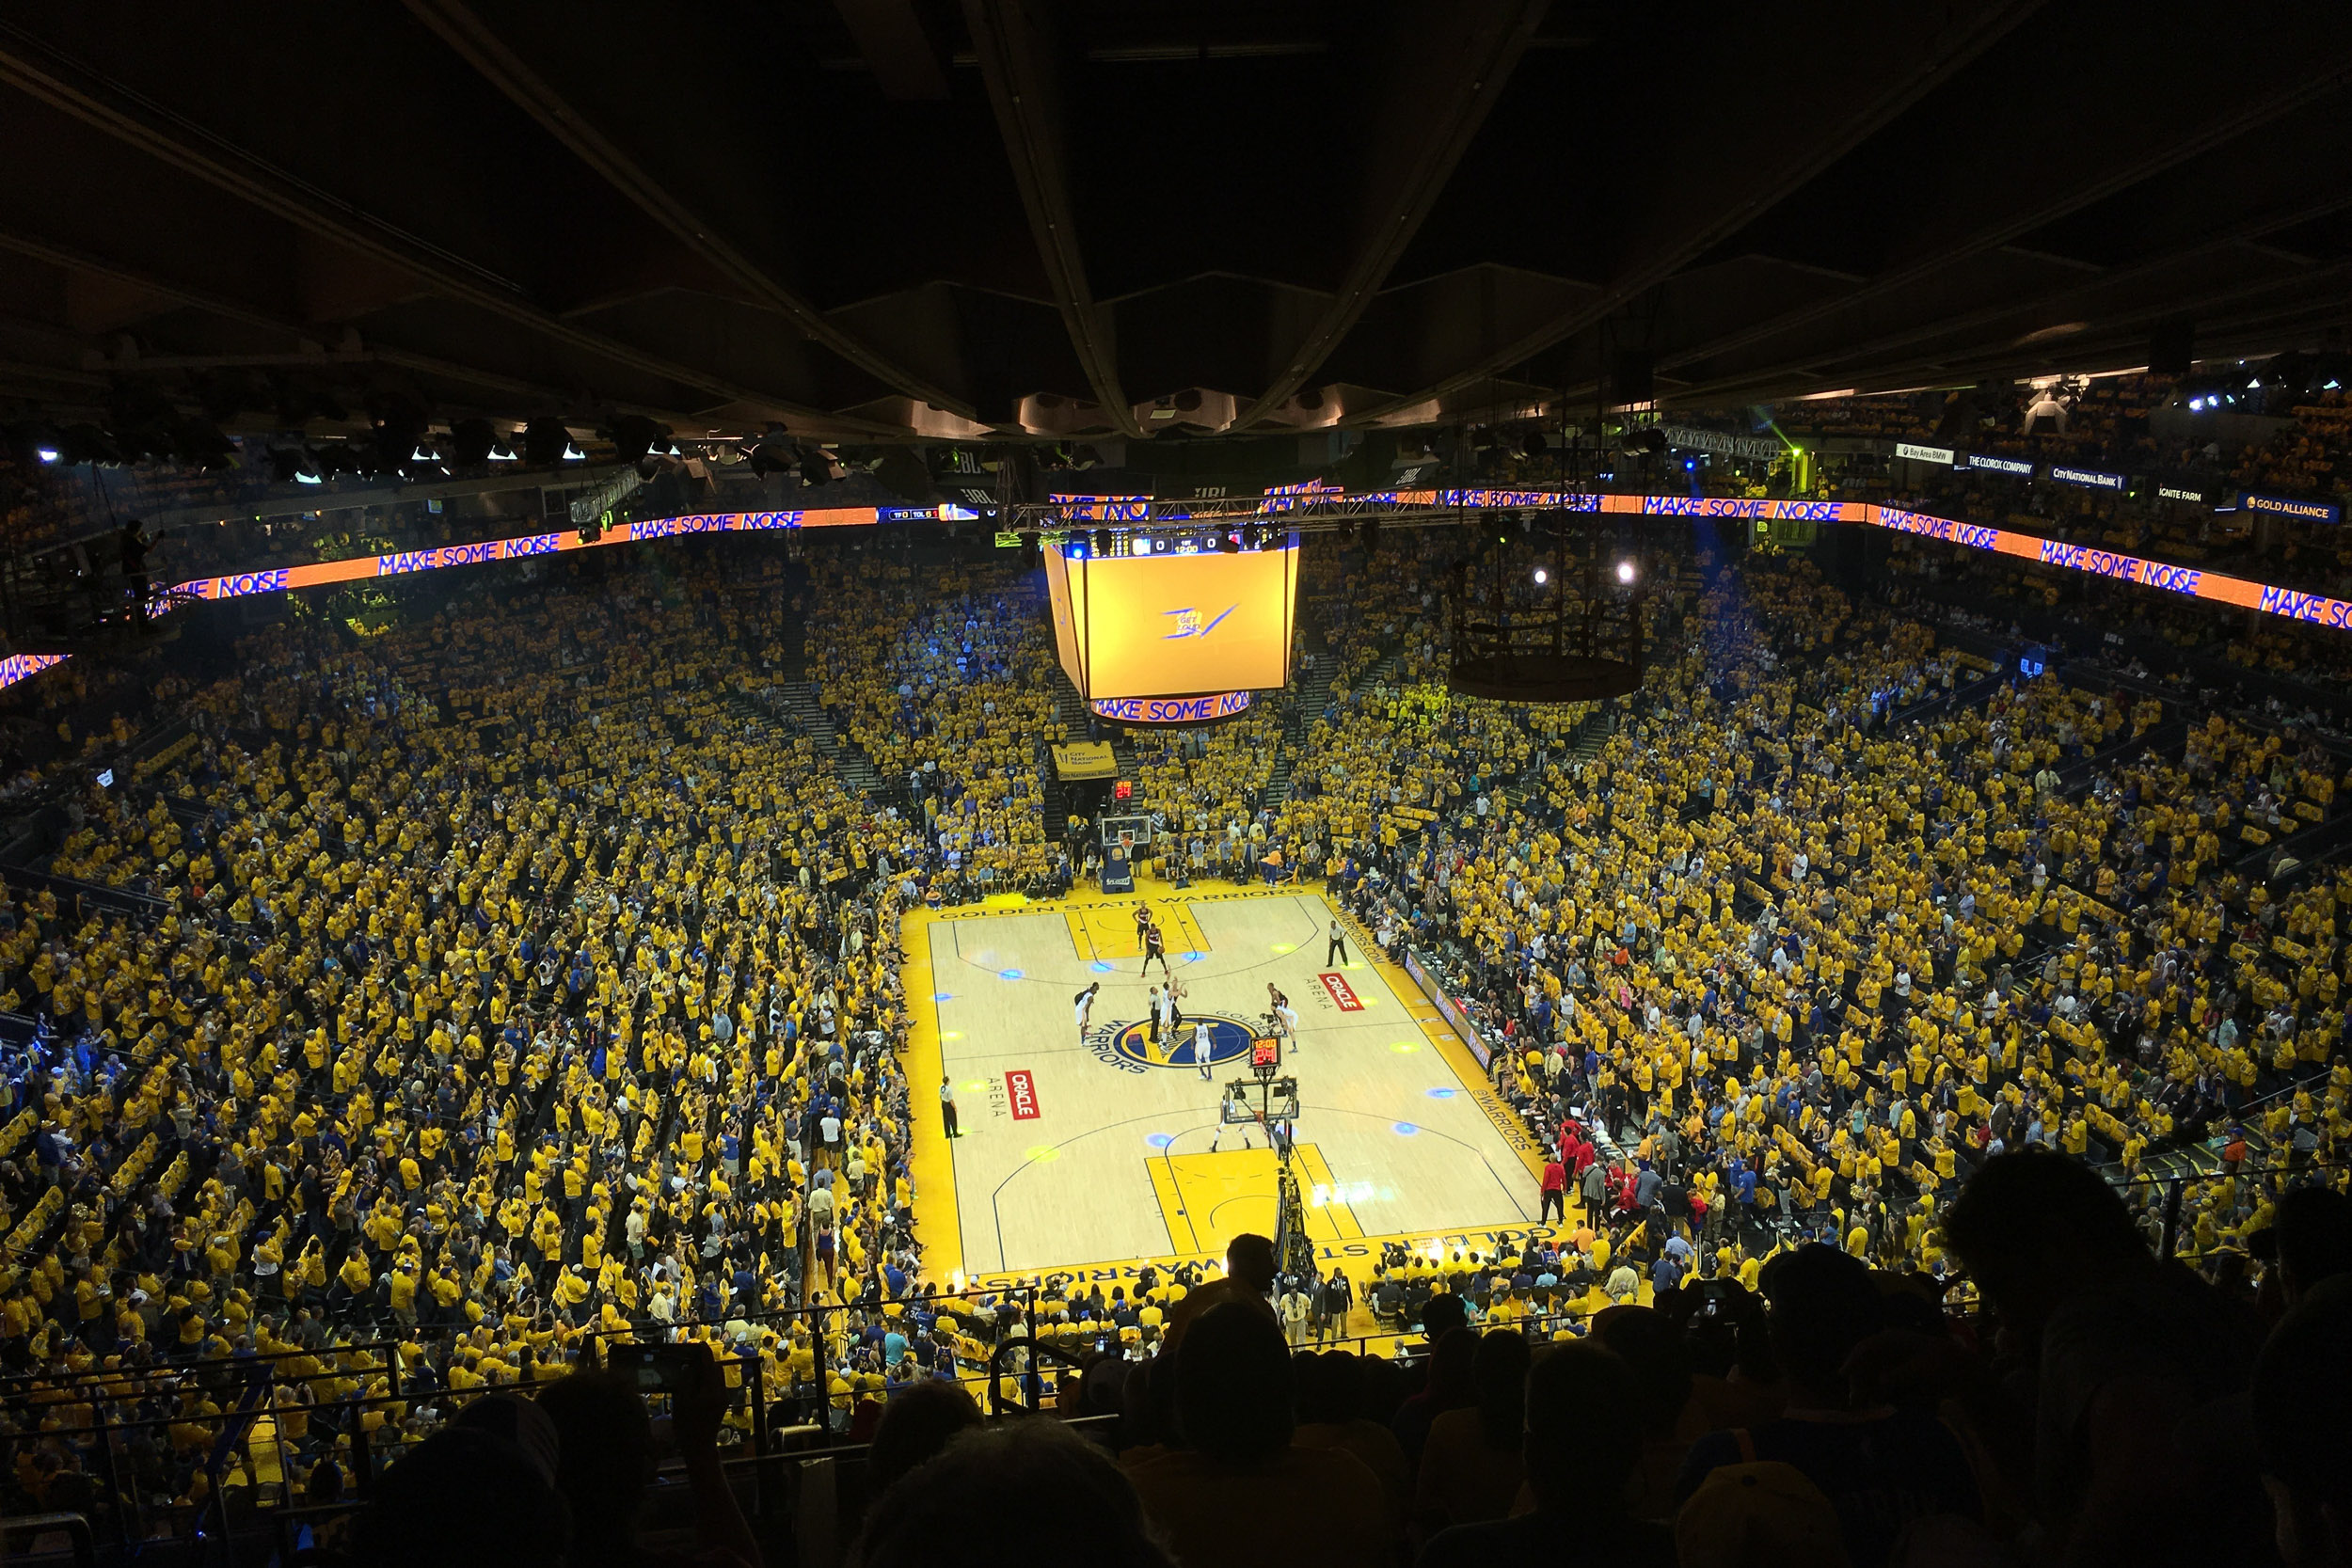 The one time I made it inside Oracle Arena for a game.